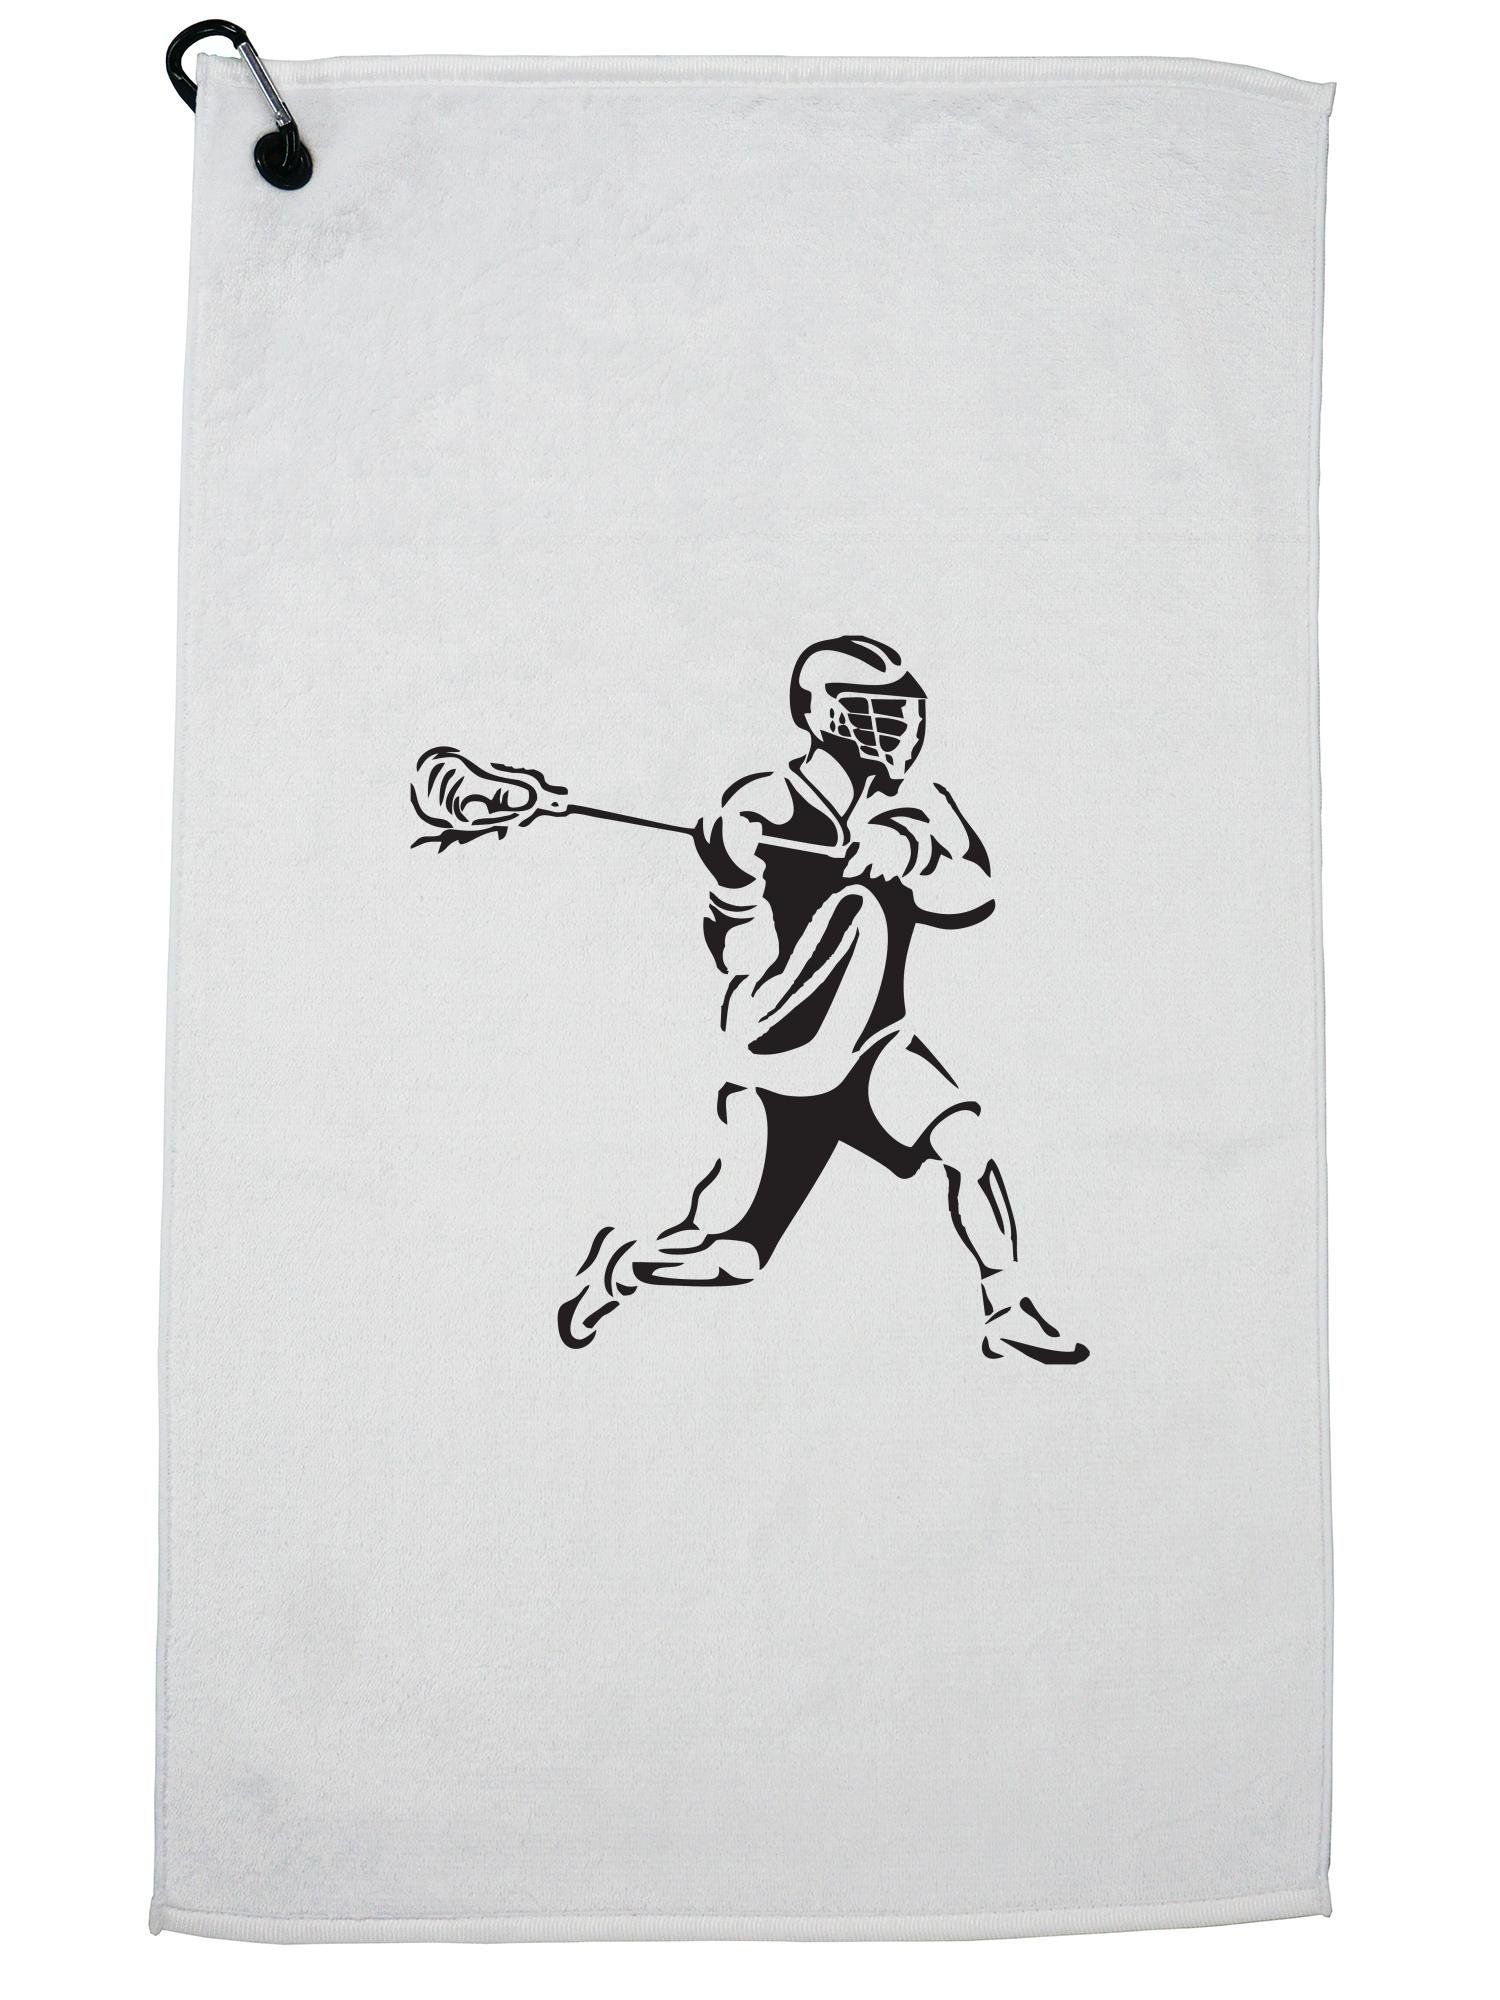 Hollywood Thread Lacrosse Stencil Player Silhouette Running With Ball Golf Towel with Carabiner Clip